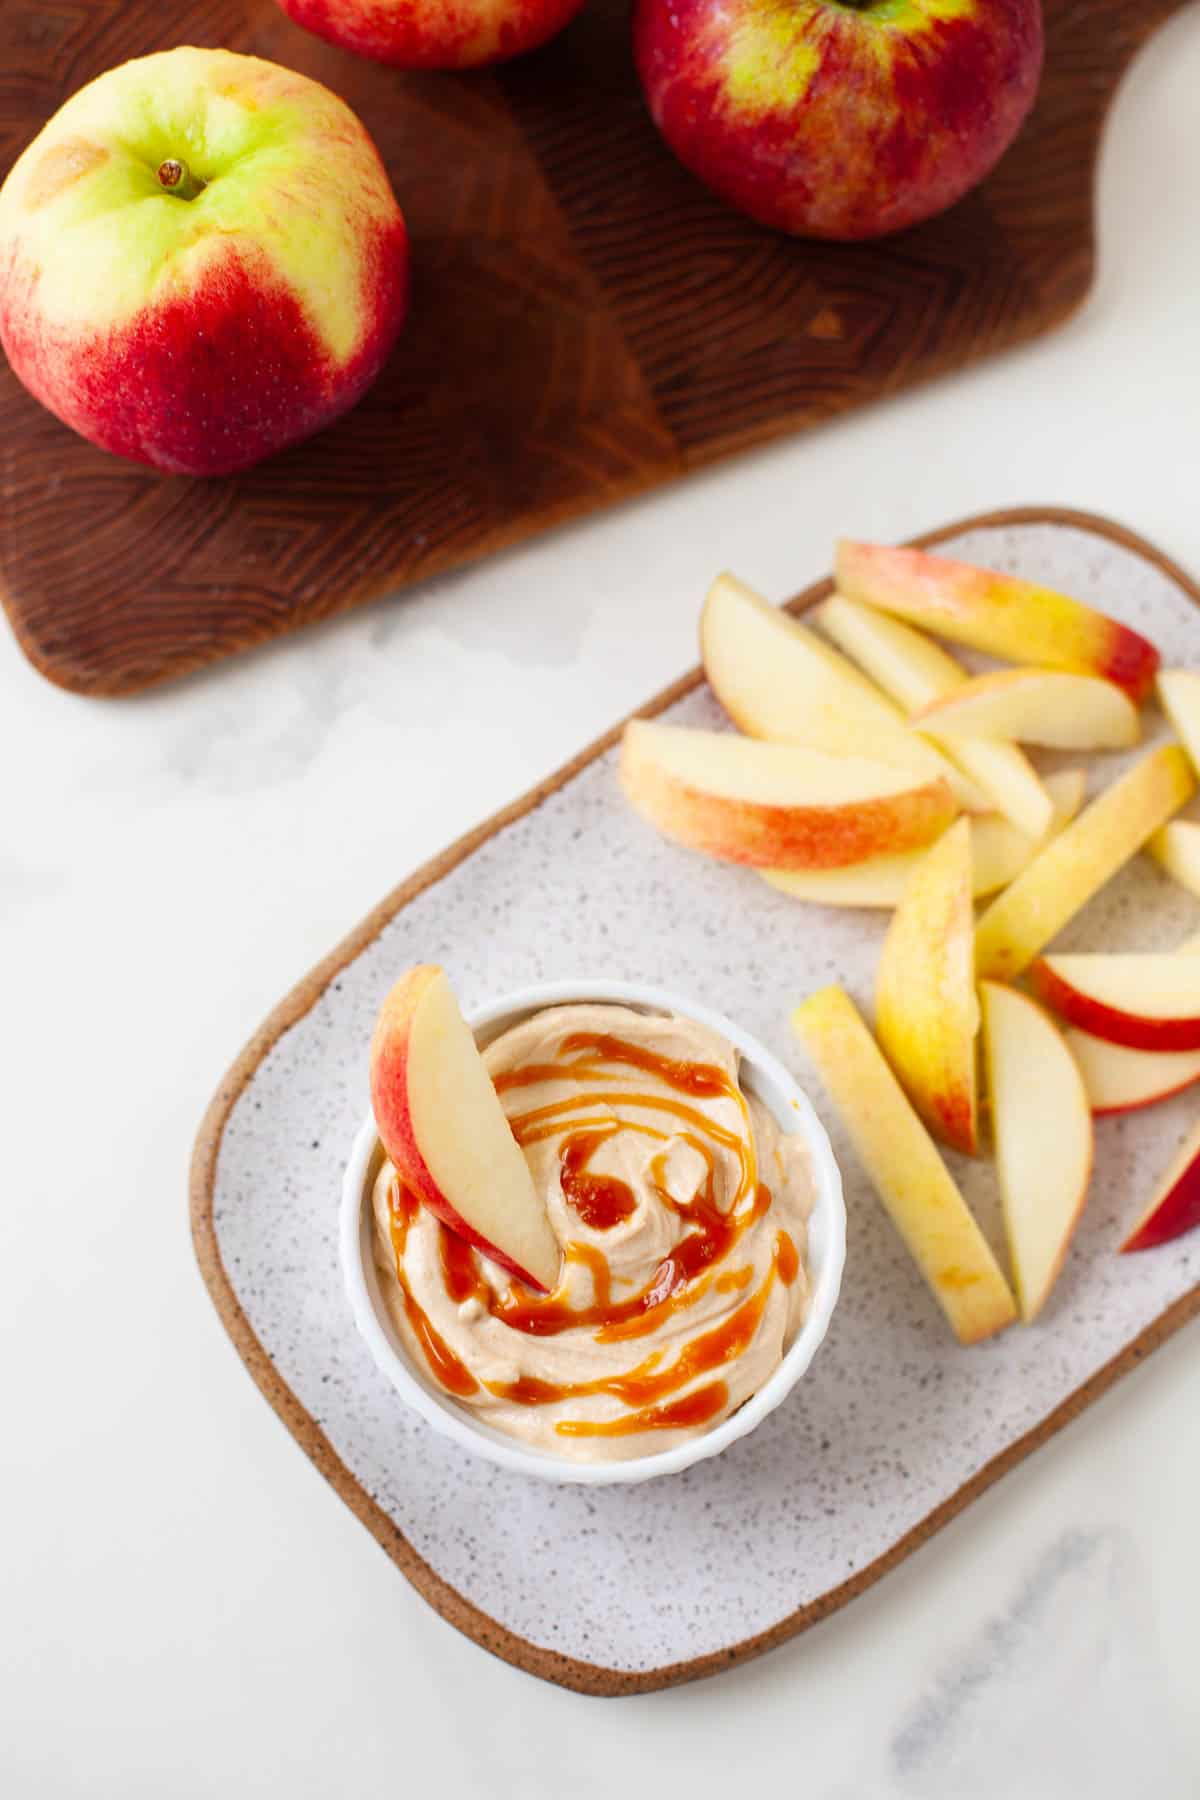 peanut butter apple dip on a place with sliced apples with apples on cutting board